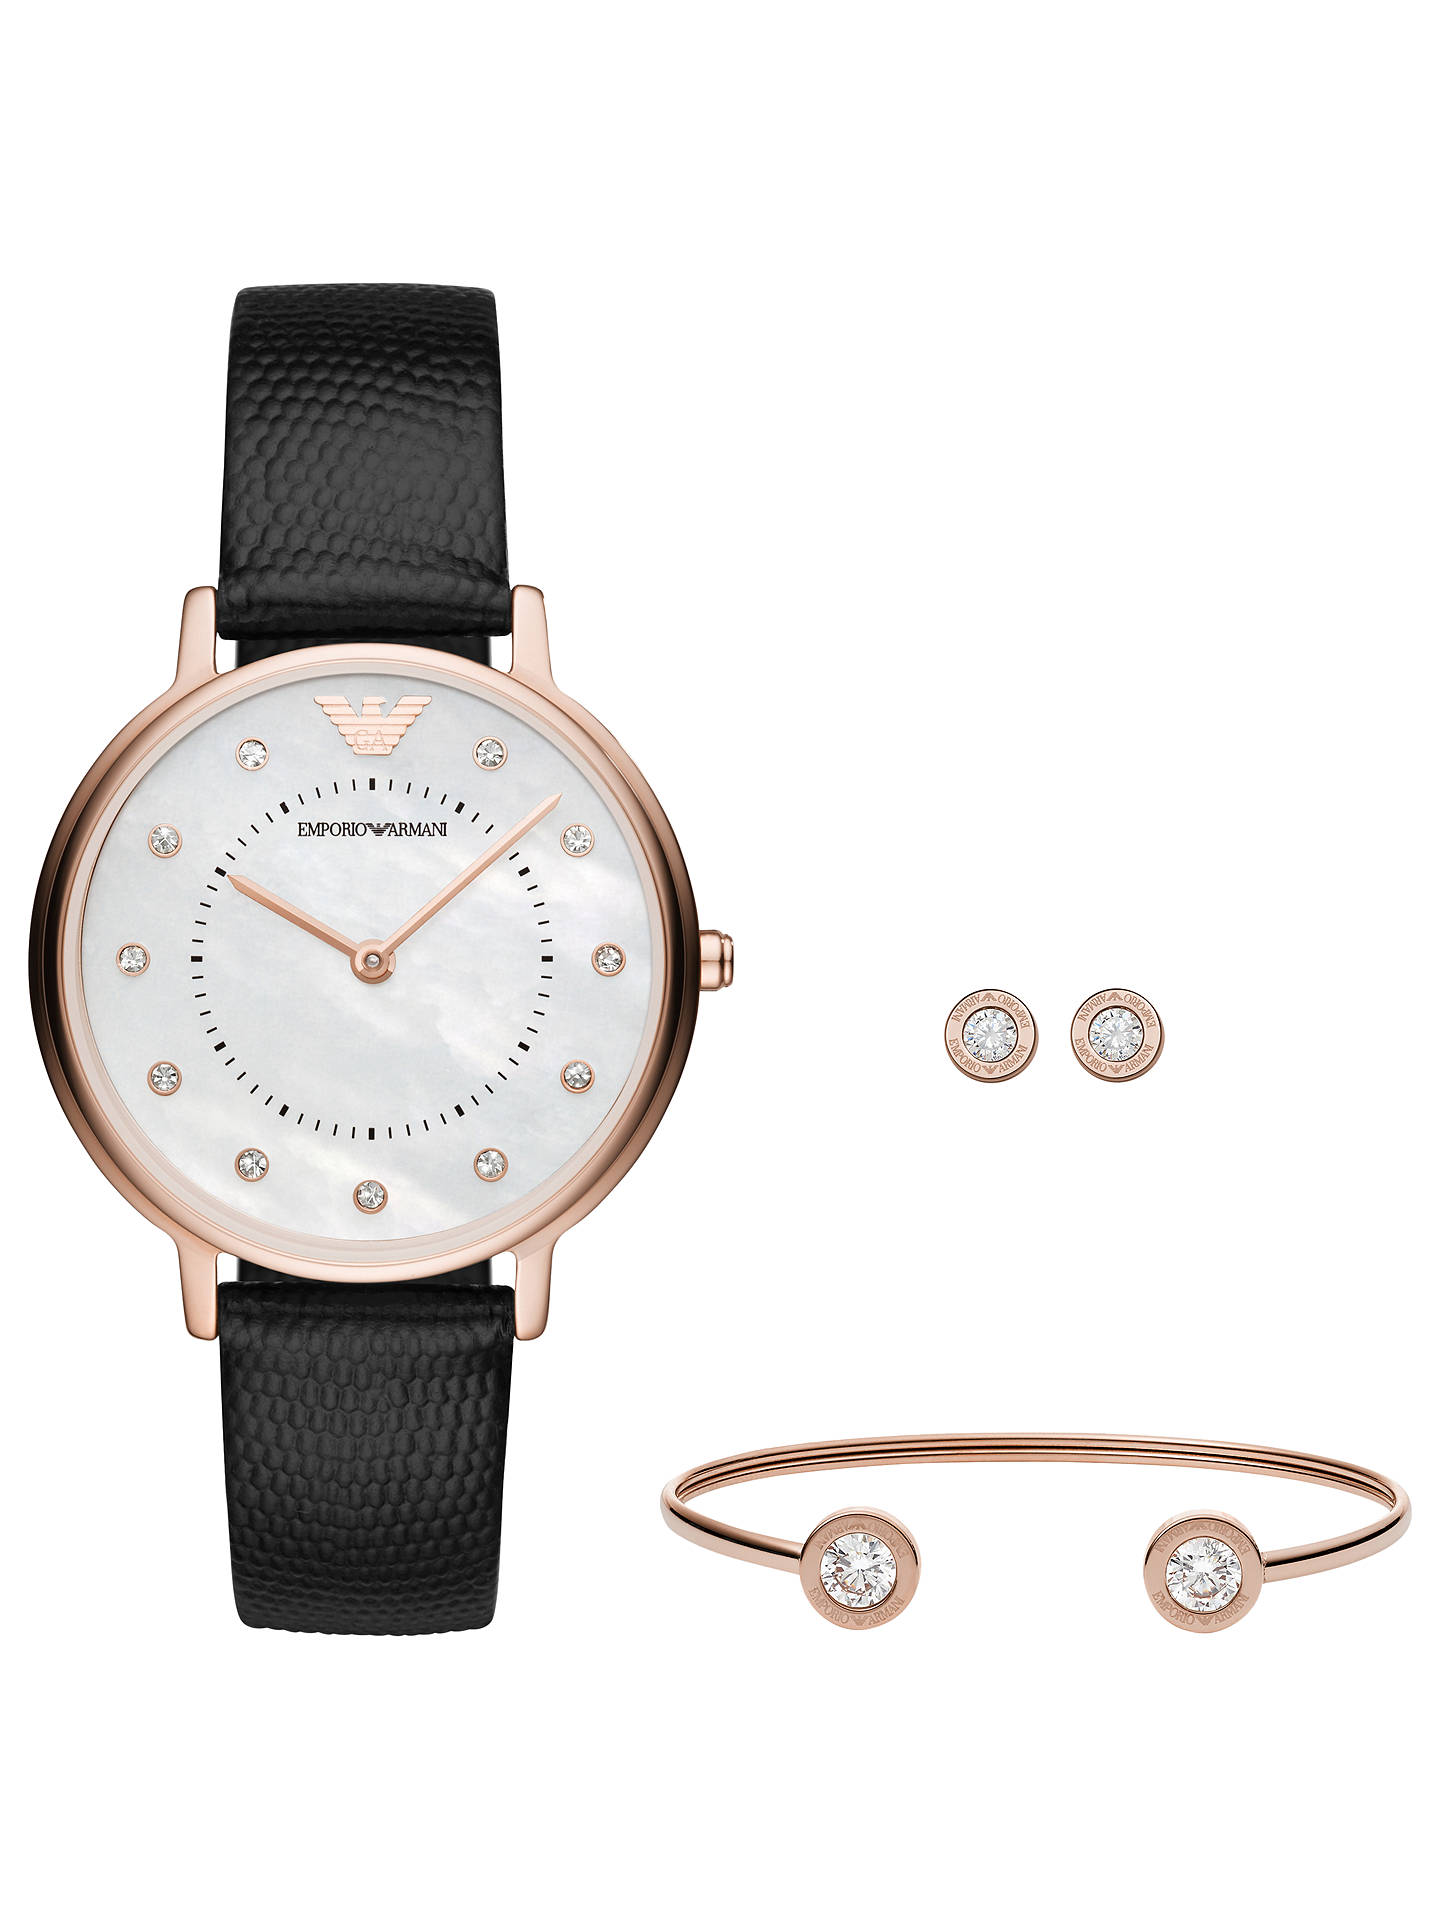 d1bab4e964 Emporio Armani AR80011 Women's Crystal Leather Strap Watch Stud Earrings  and Bangle Gift Set, Black/White